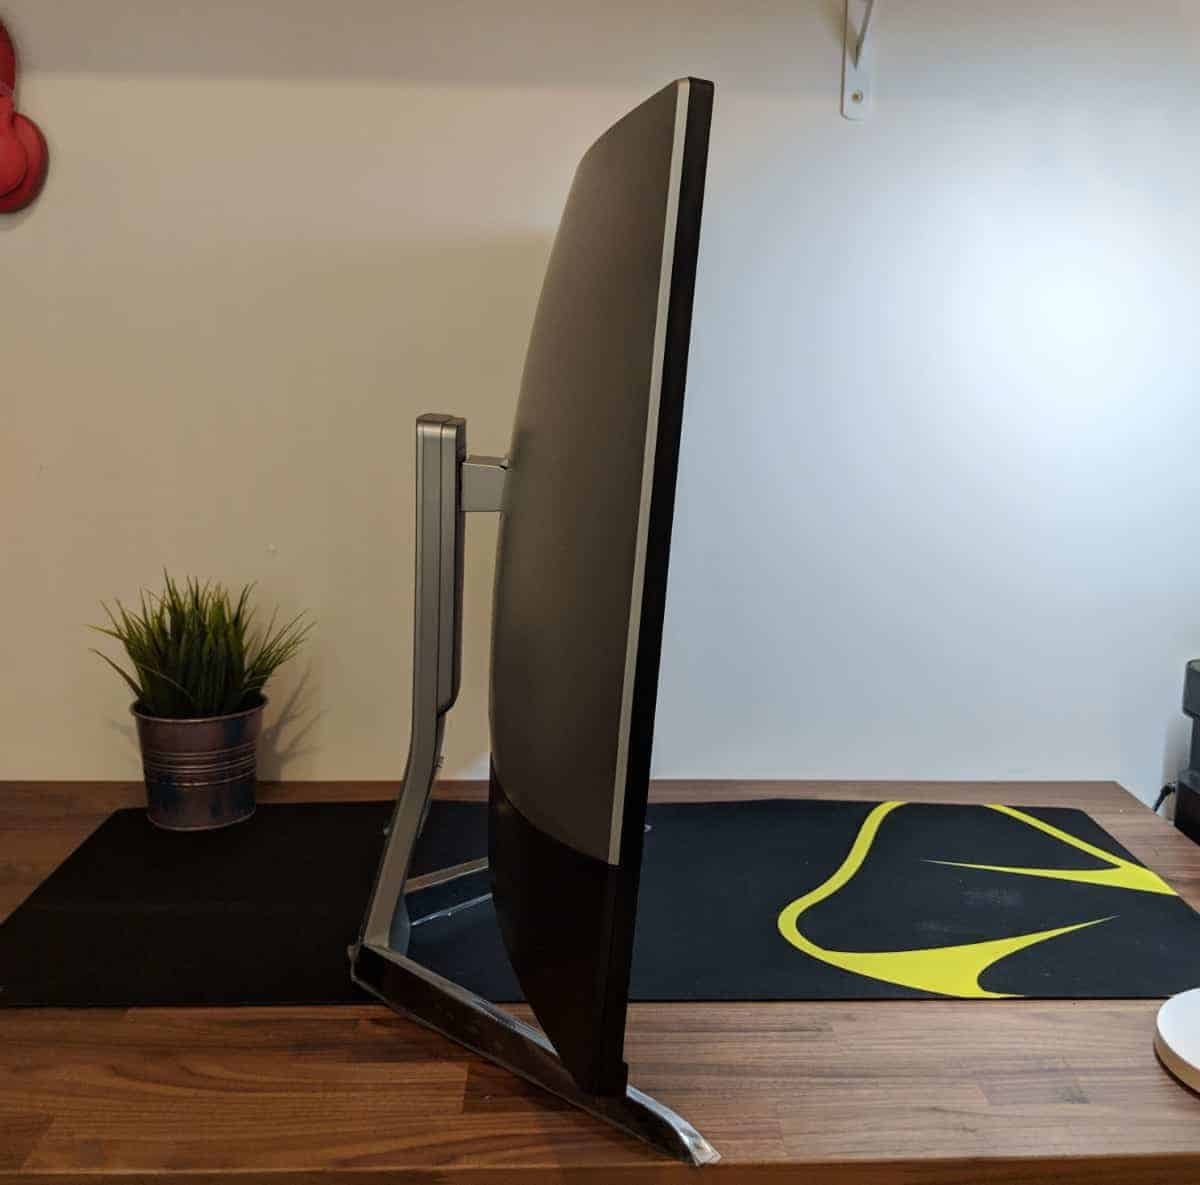 BenQ-EX3203R-Photos-05 BenQ EX3203R Curved Gaming Monitor Review